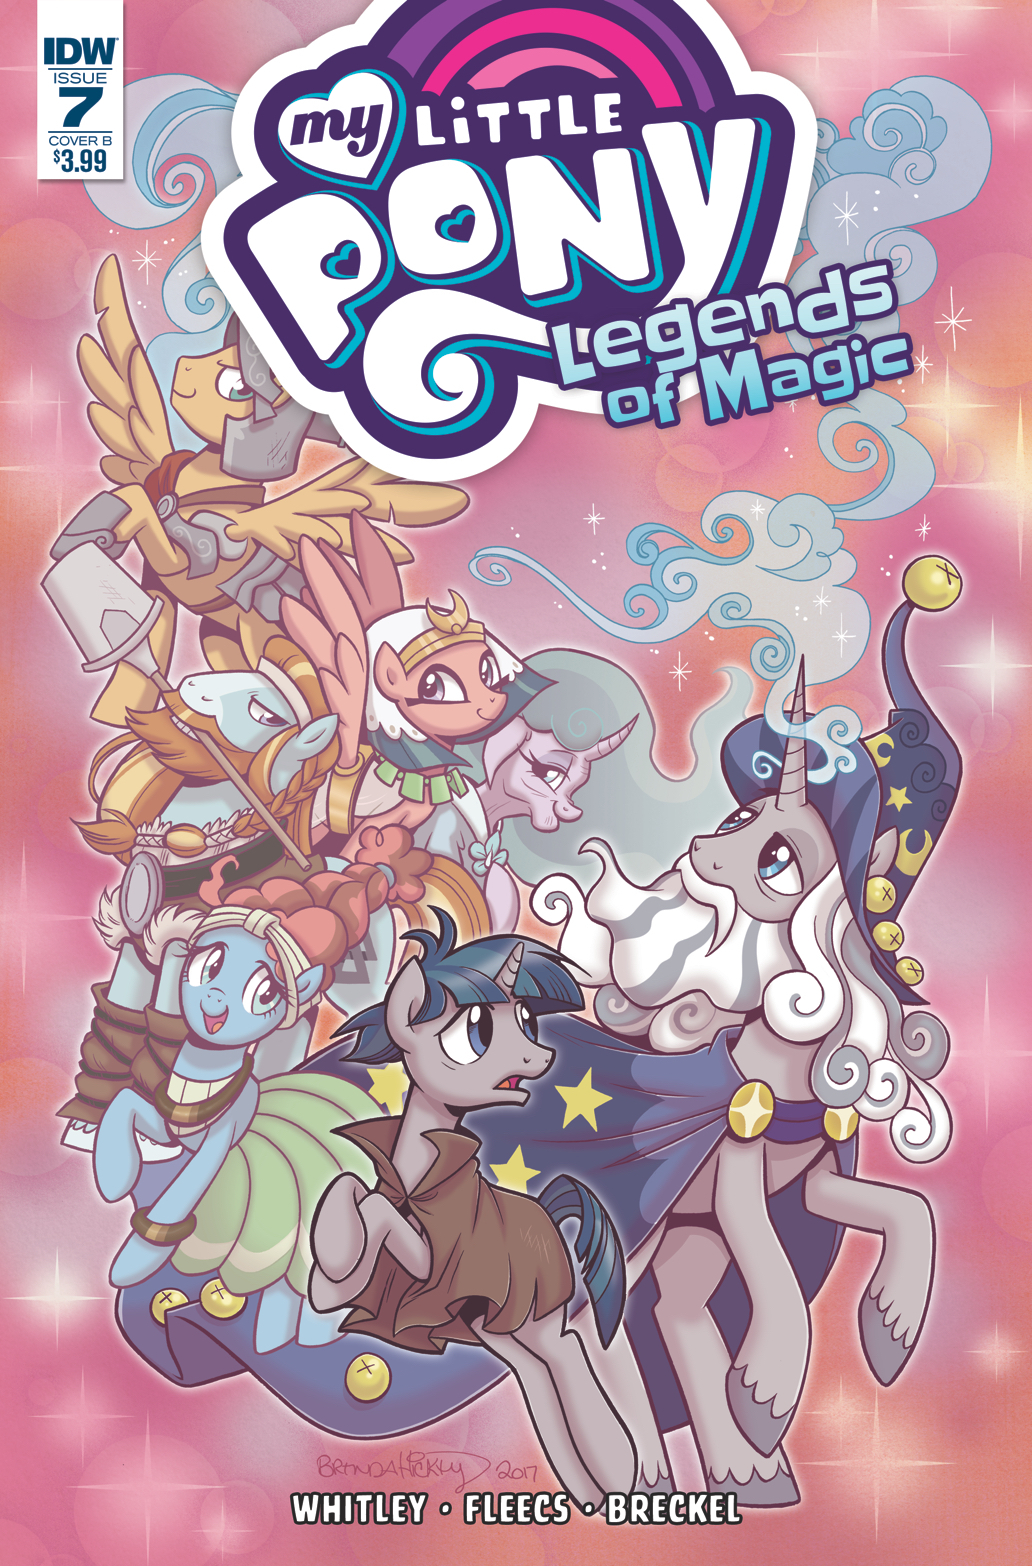 MY LITTLE PONY LEGENDS OF MAGIC #7 CVR B HICKEY